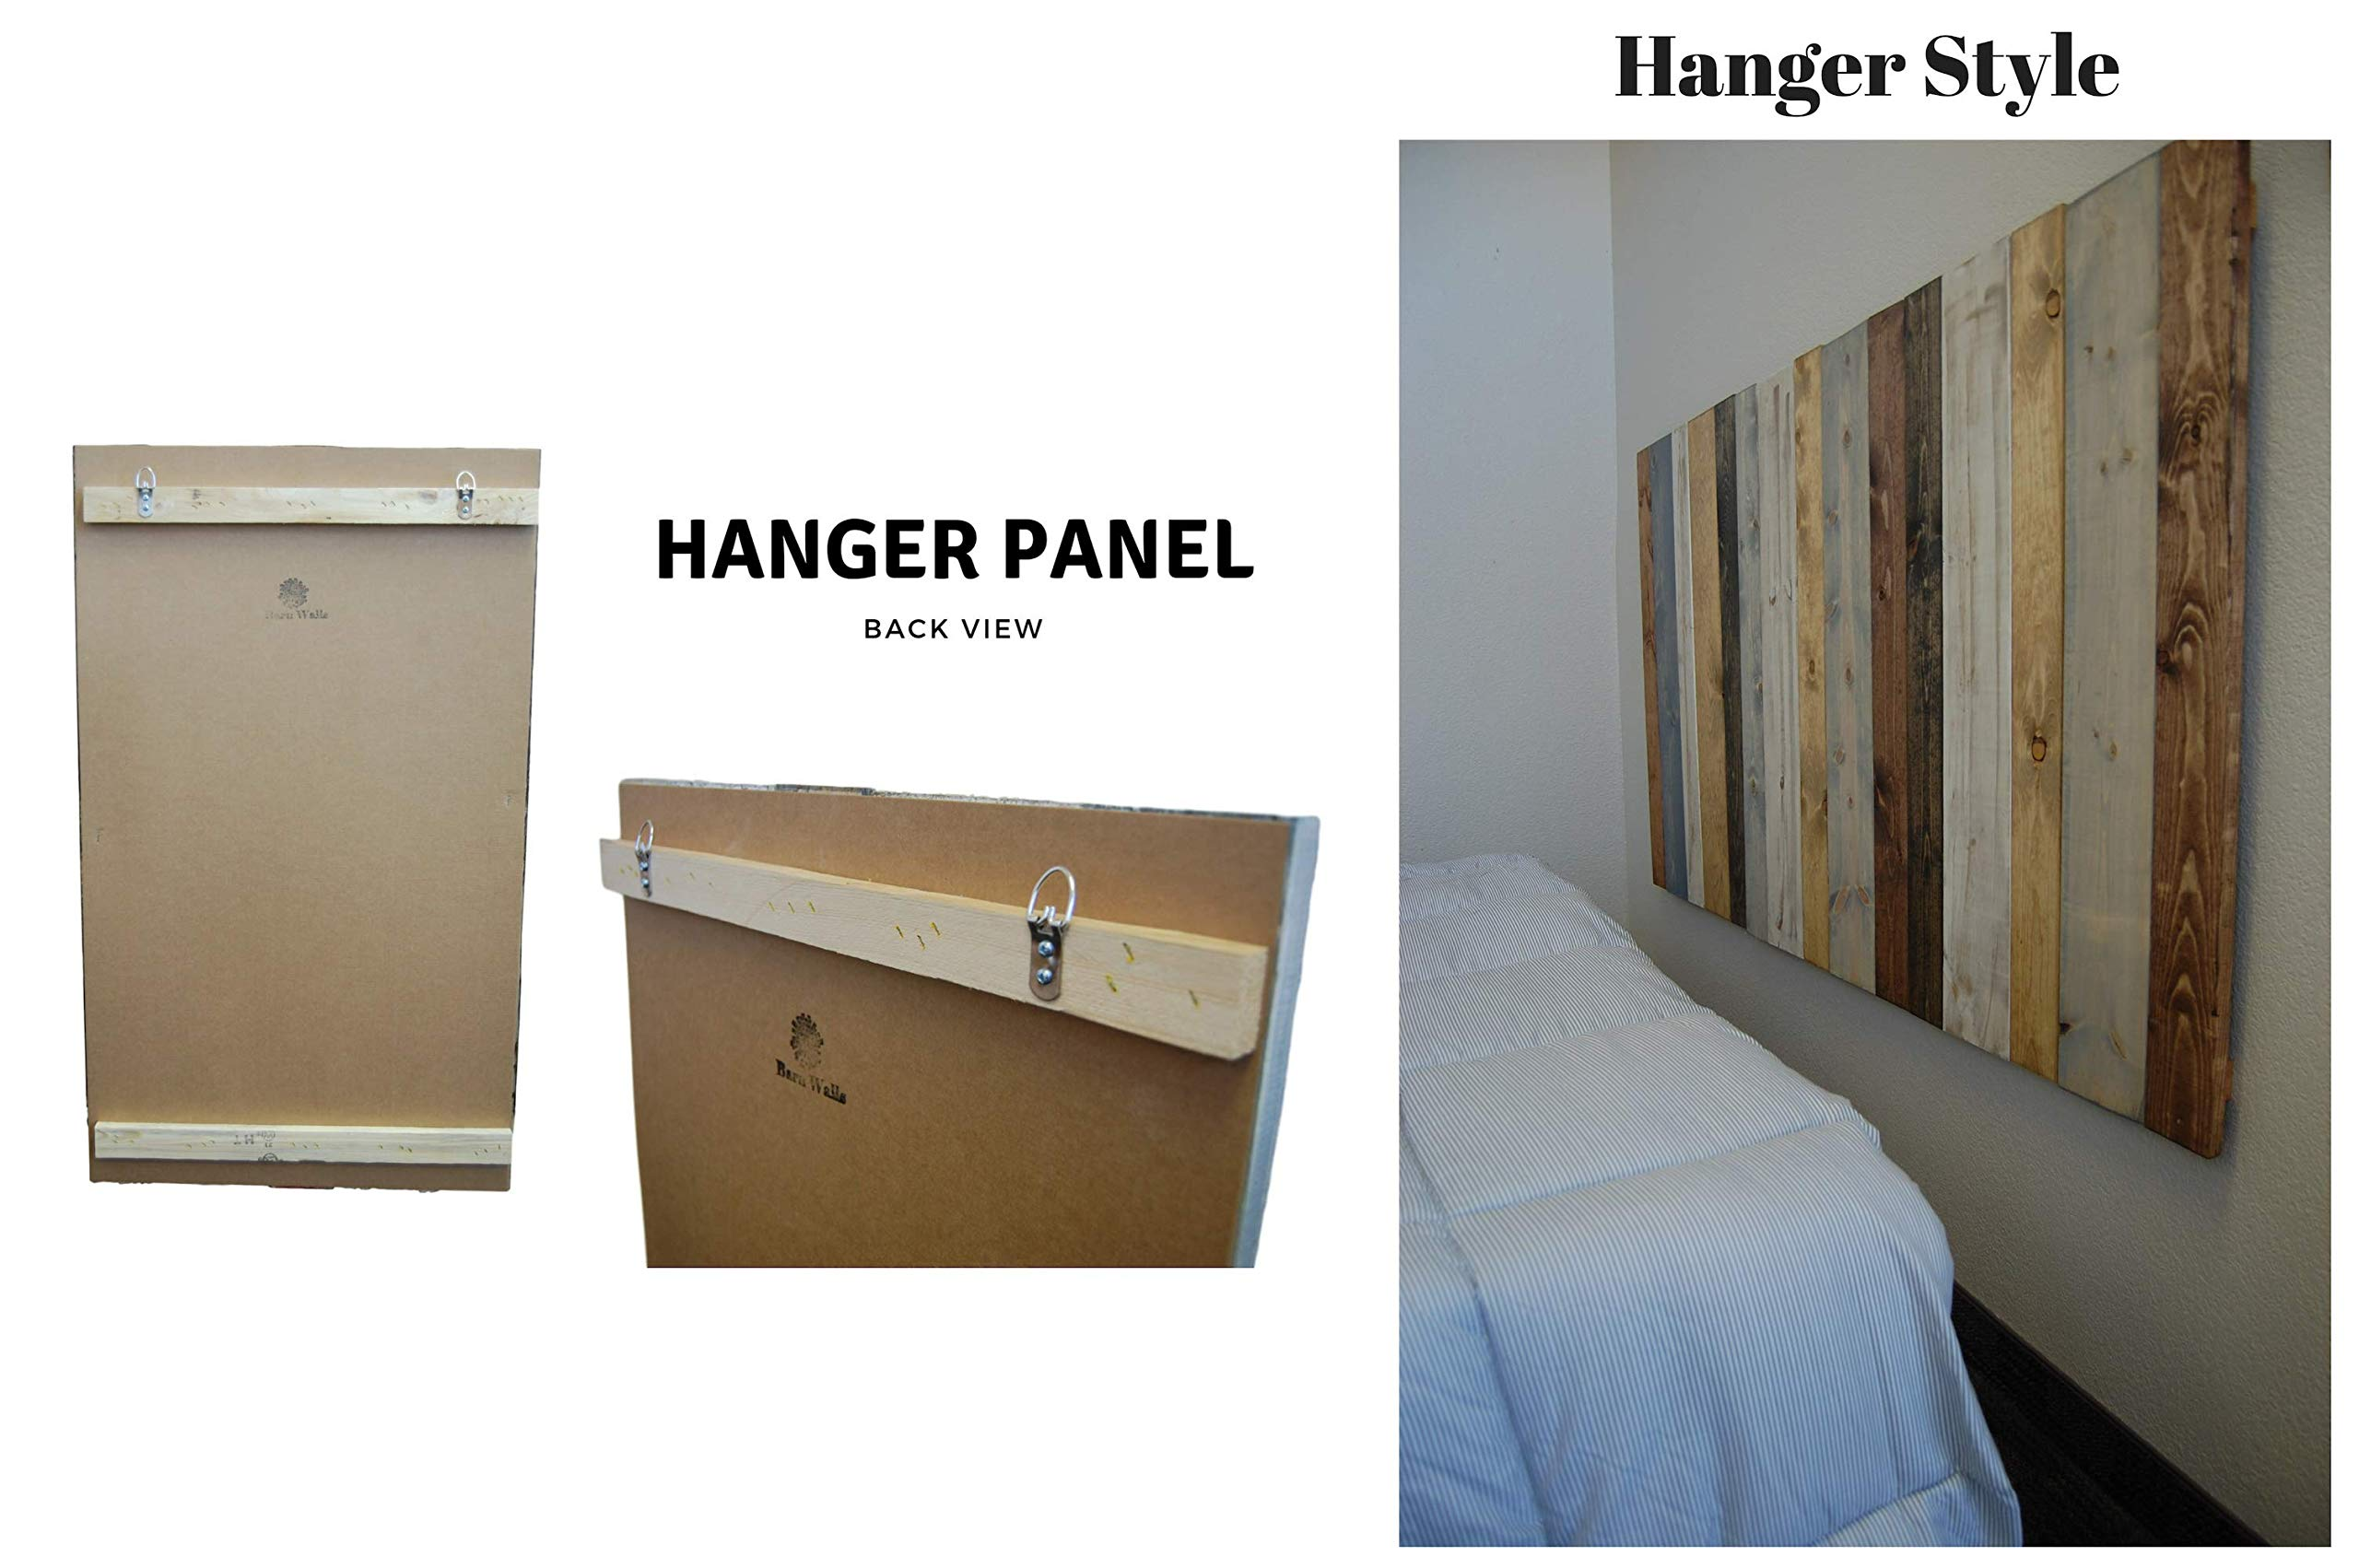 Industrial Mix Headboard Queen Size, Hanger Style, Handcrafted. Mounts on Wall. Easy Installation. by Barn Walls